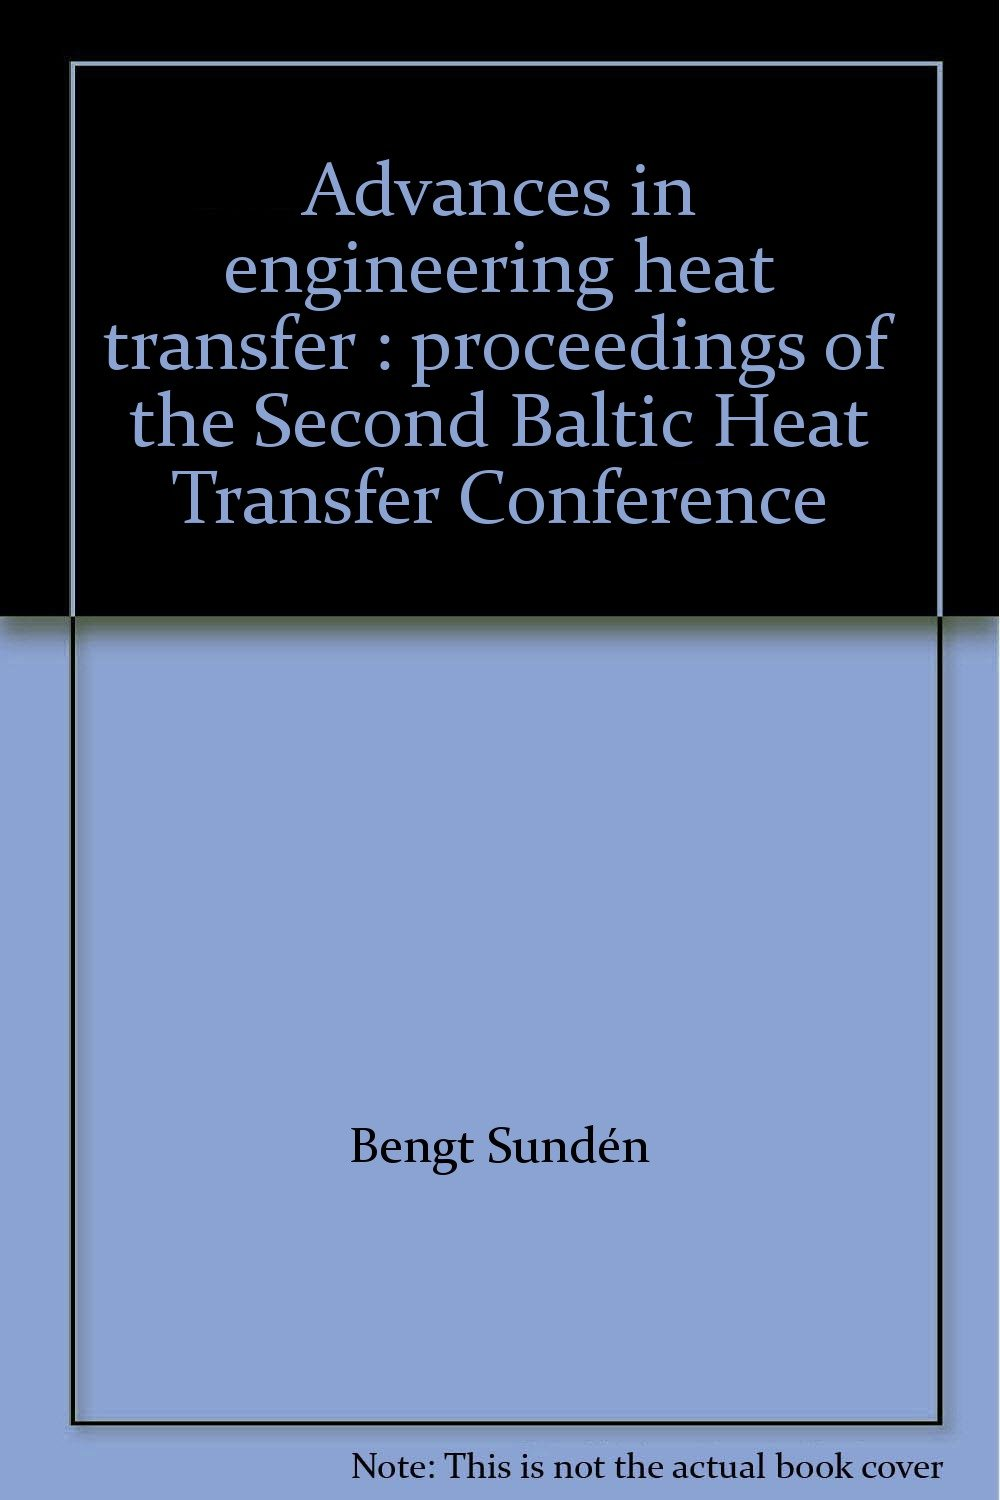 Advances in engineering heat transfer : proceedings of the